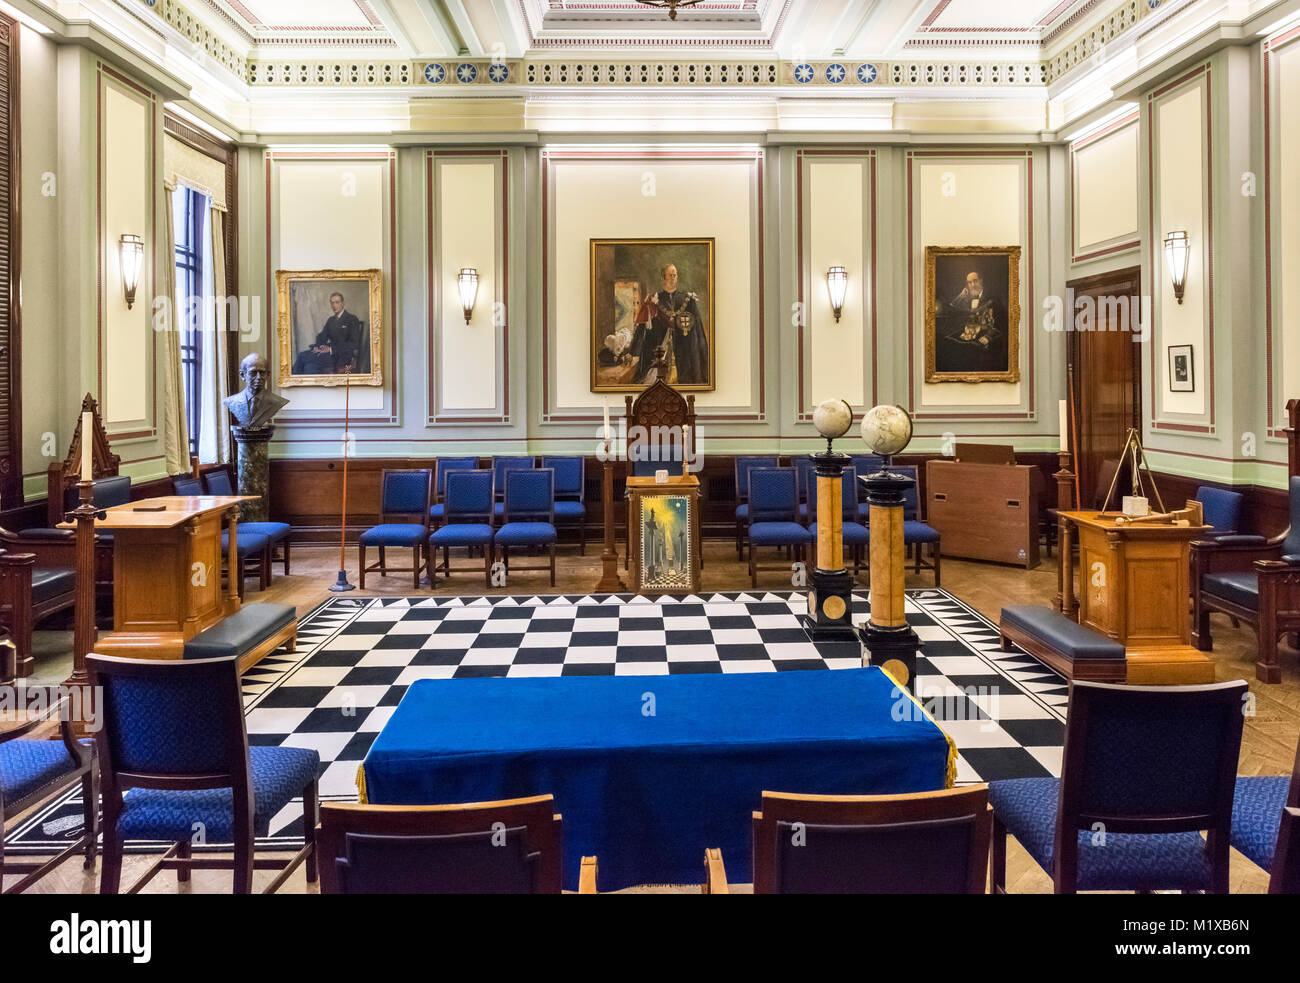 A Lodge Room. set up for a lodge meeting, in Freemasons' Hall, London, England, UK. - Stock Image